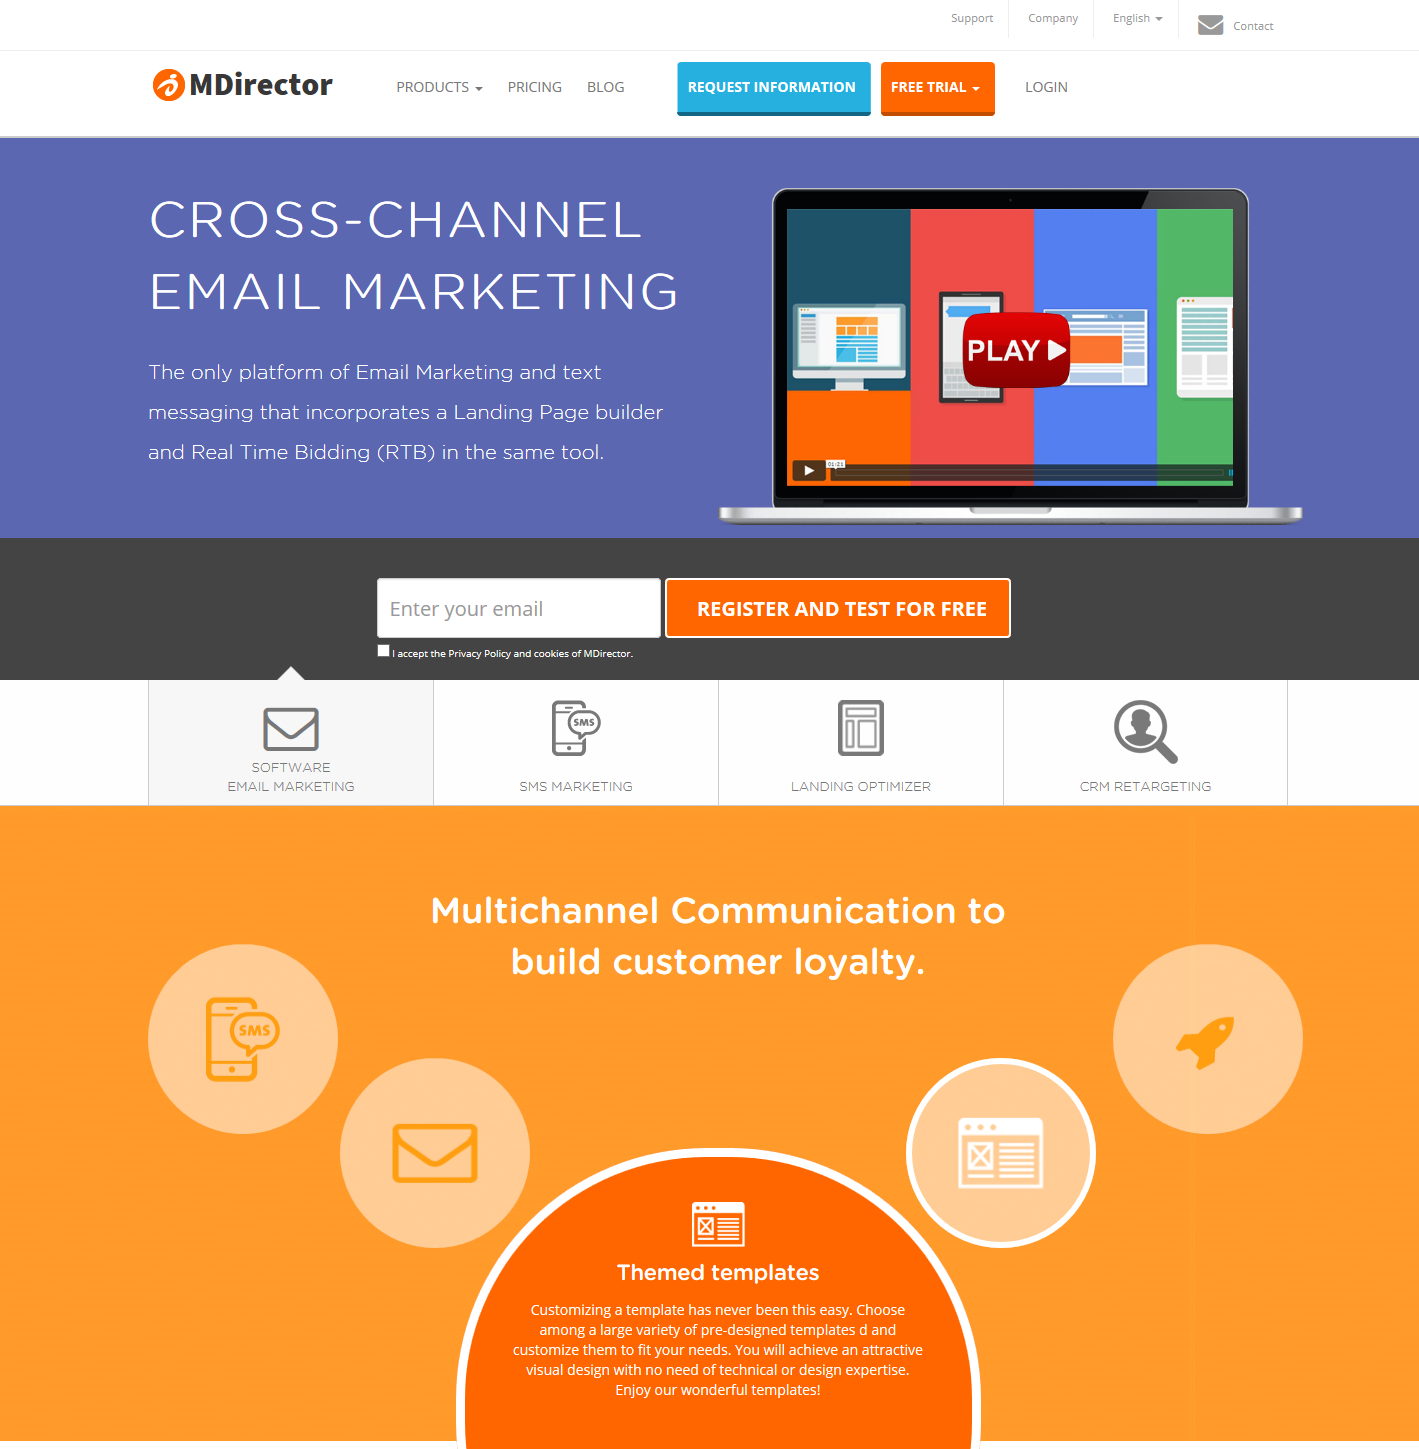 product landing pages: MDirector